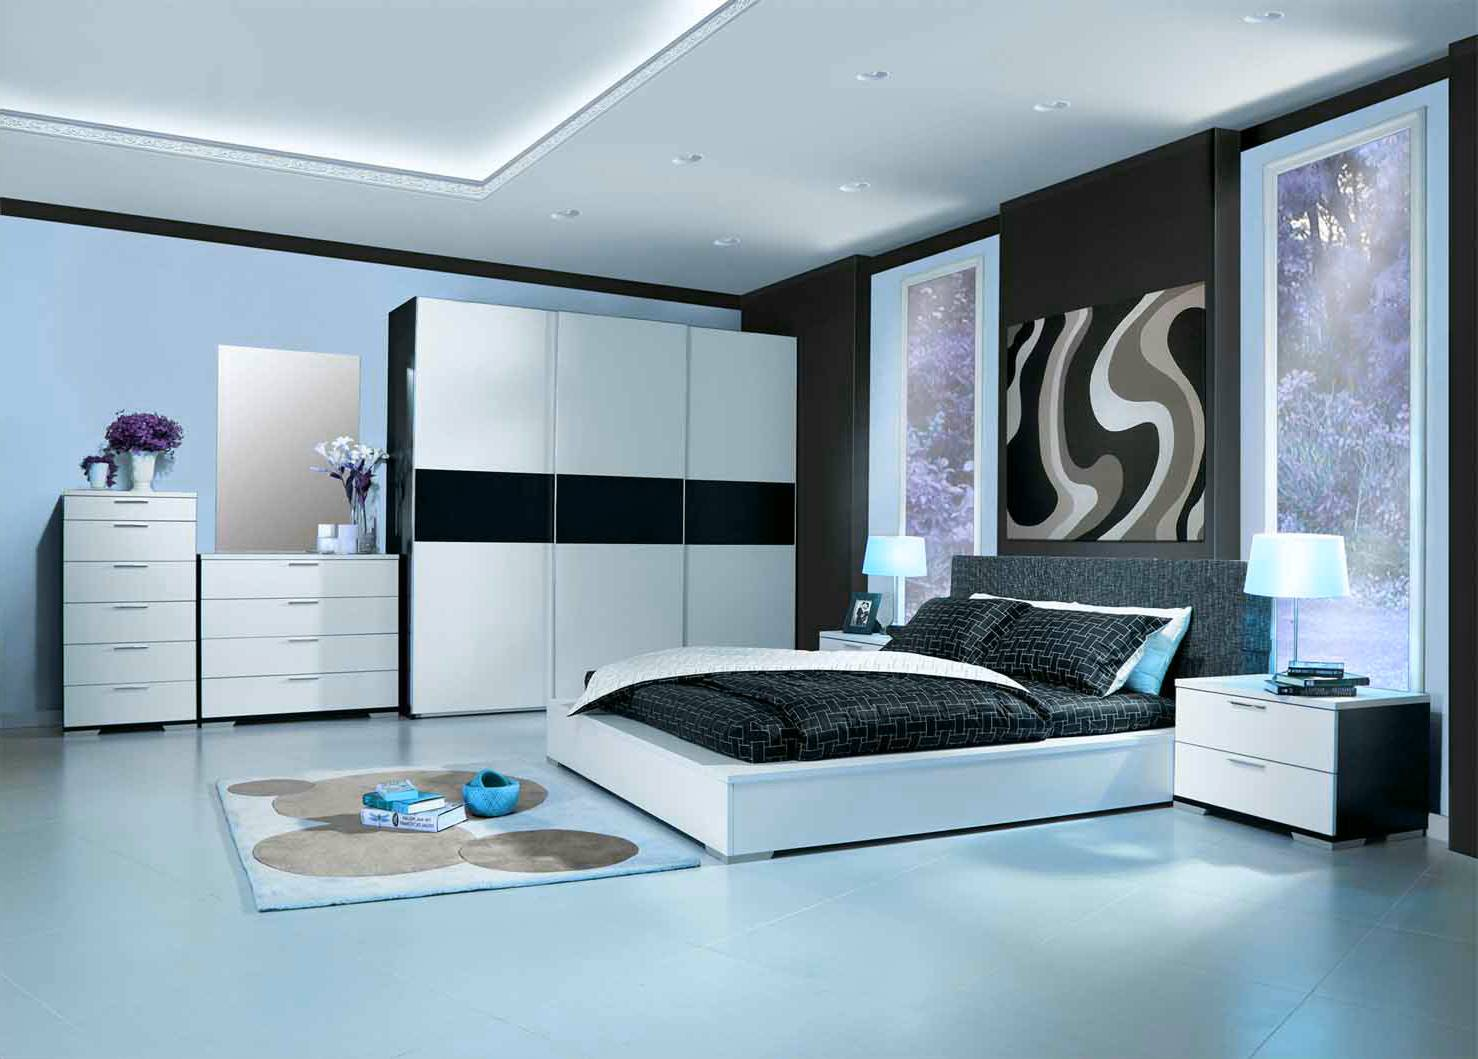 Interior Design For Bedrooms With Interior Design Bedroom